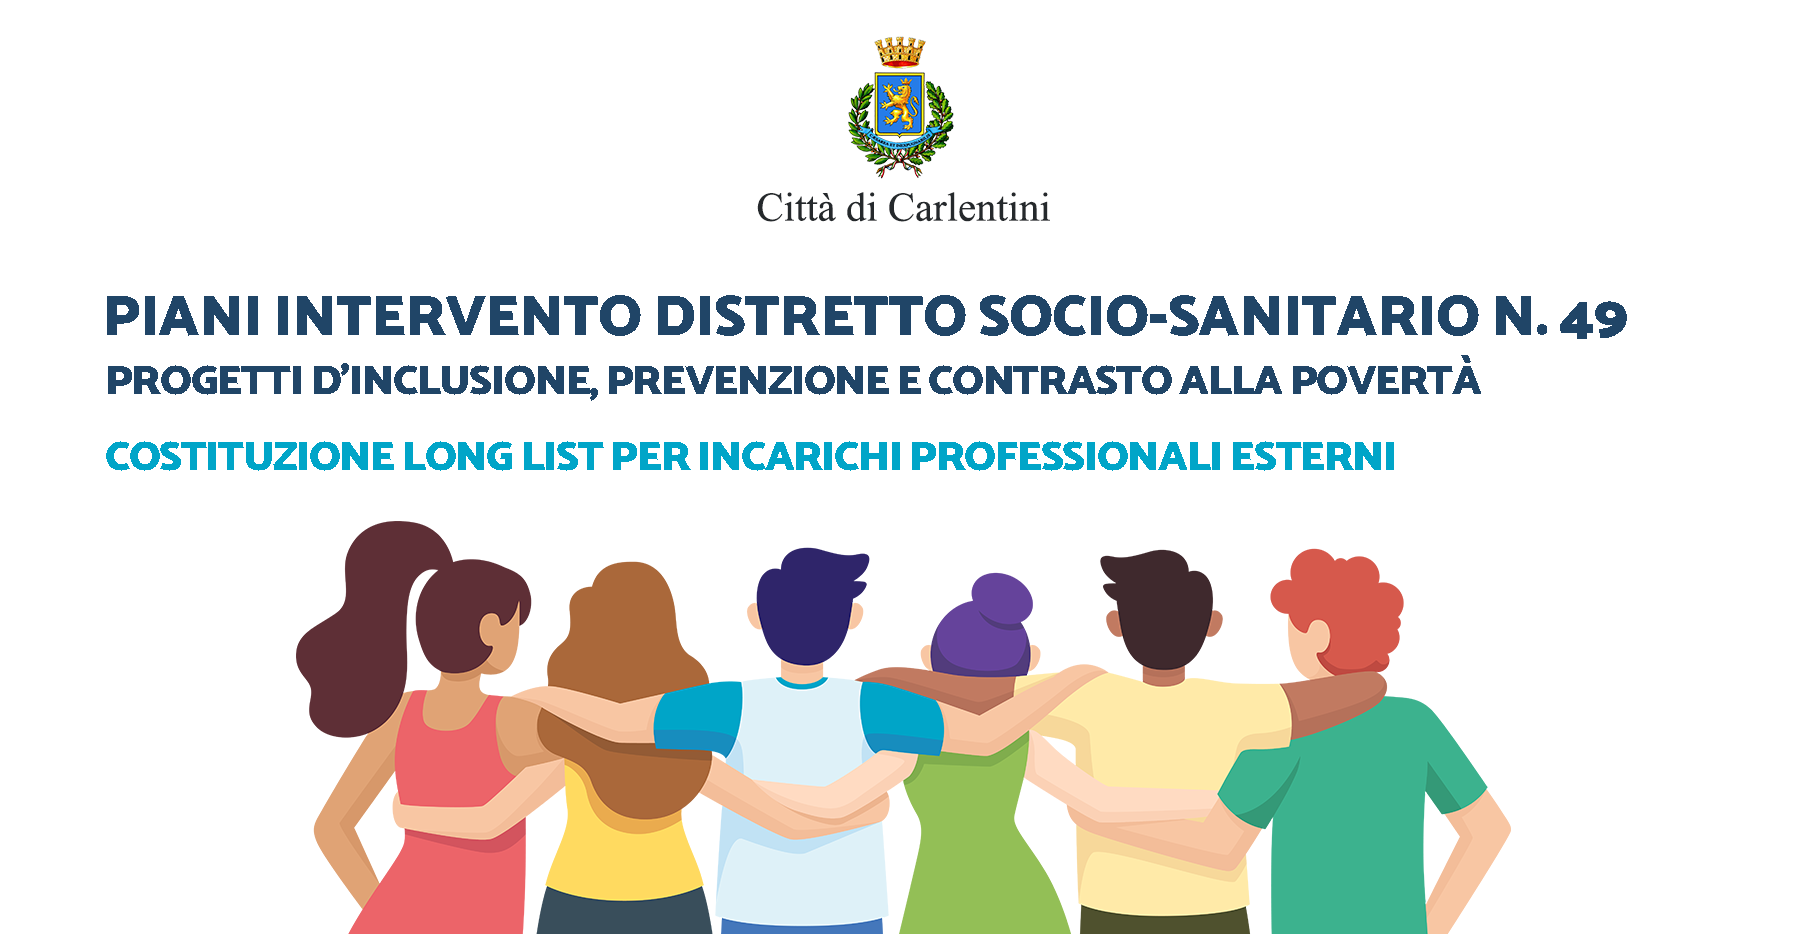 Piani di intervento Distretto socio-sanitario n° 49: Long list per incarichi professionali esterni